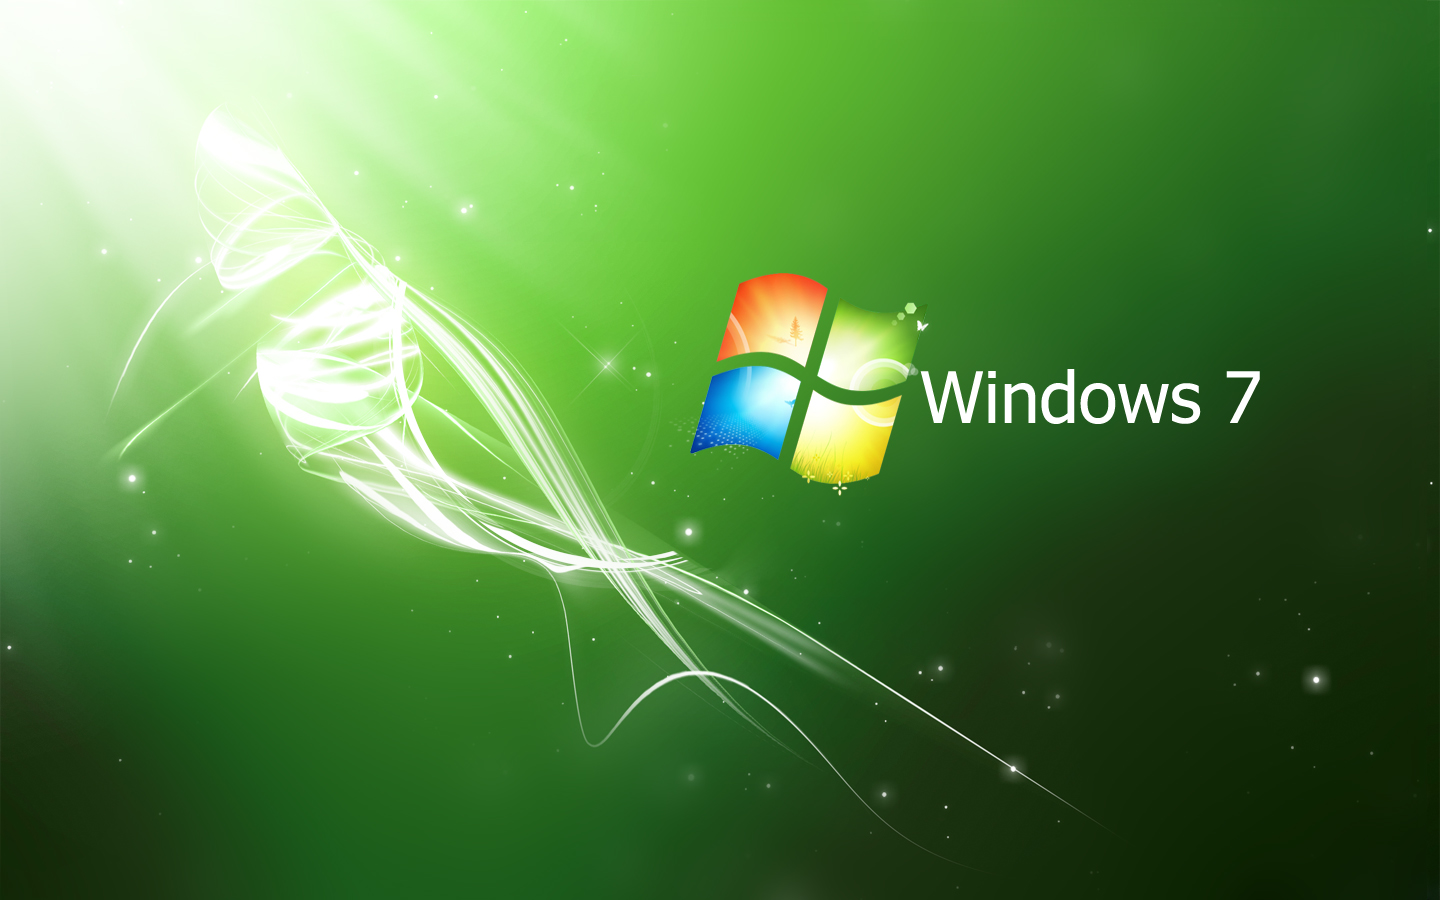 Windows 7 Crystal Pack Blue